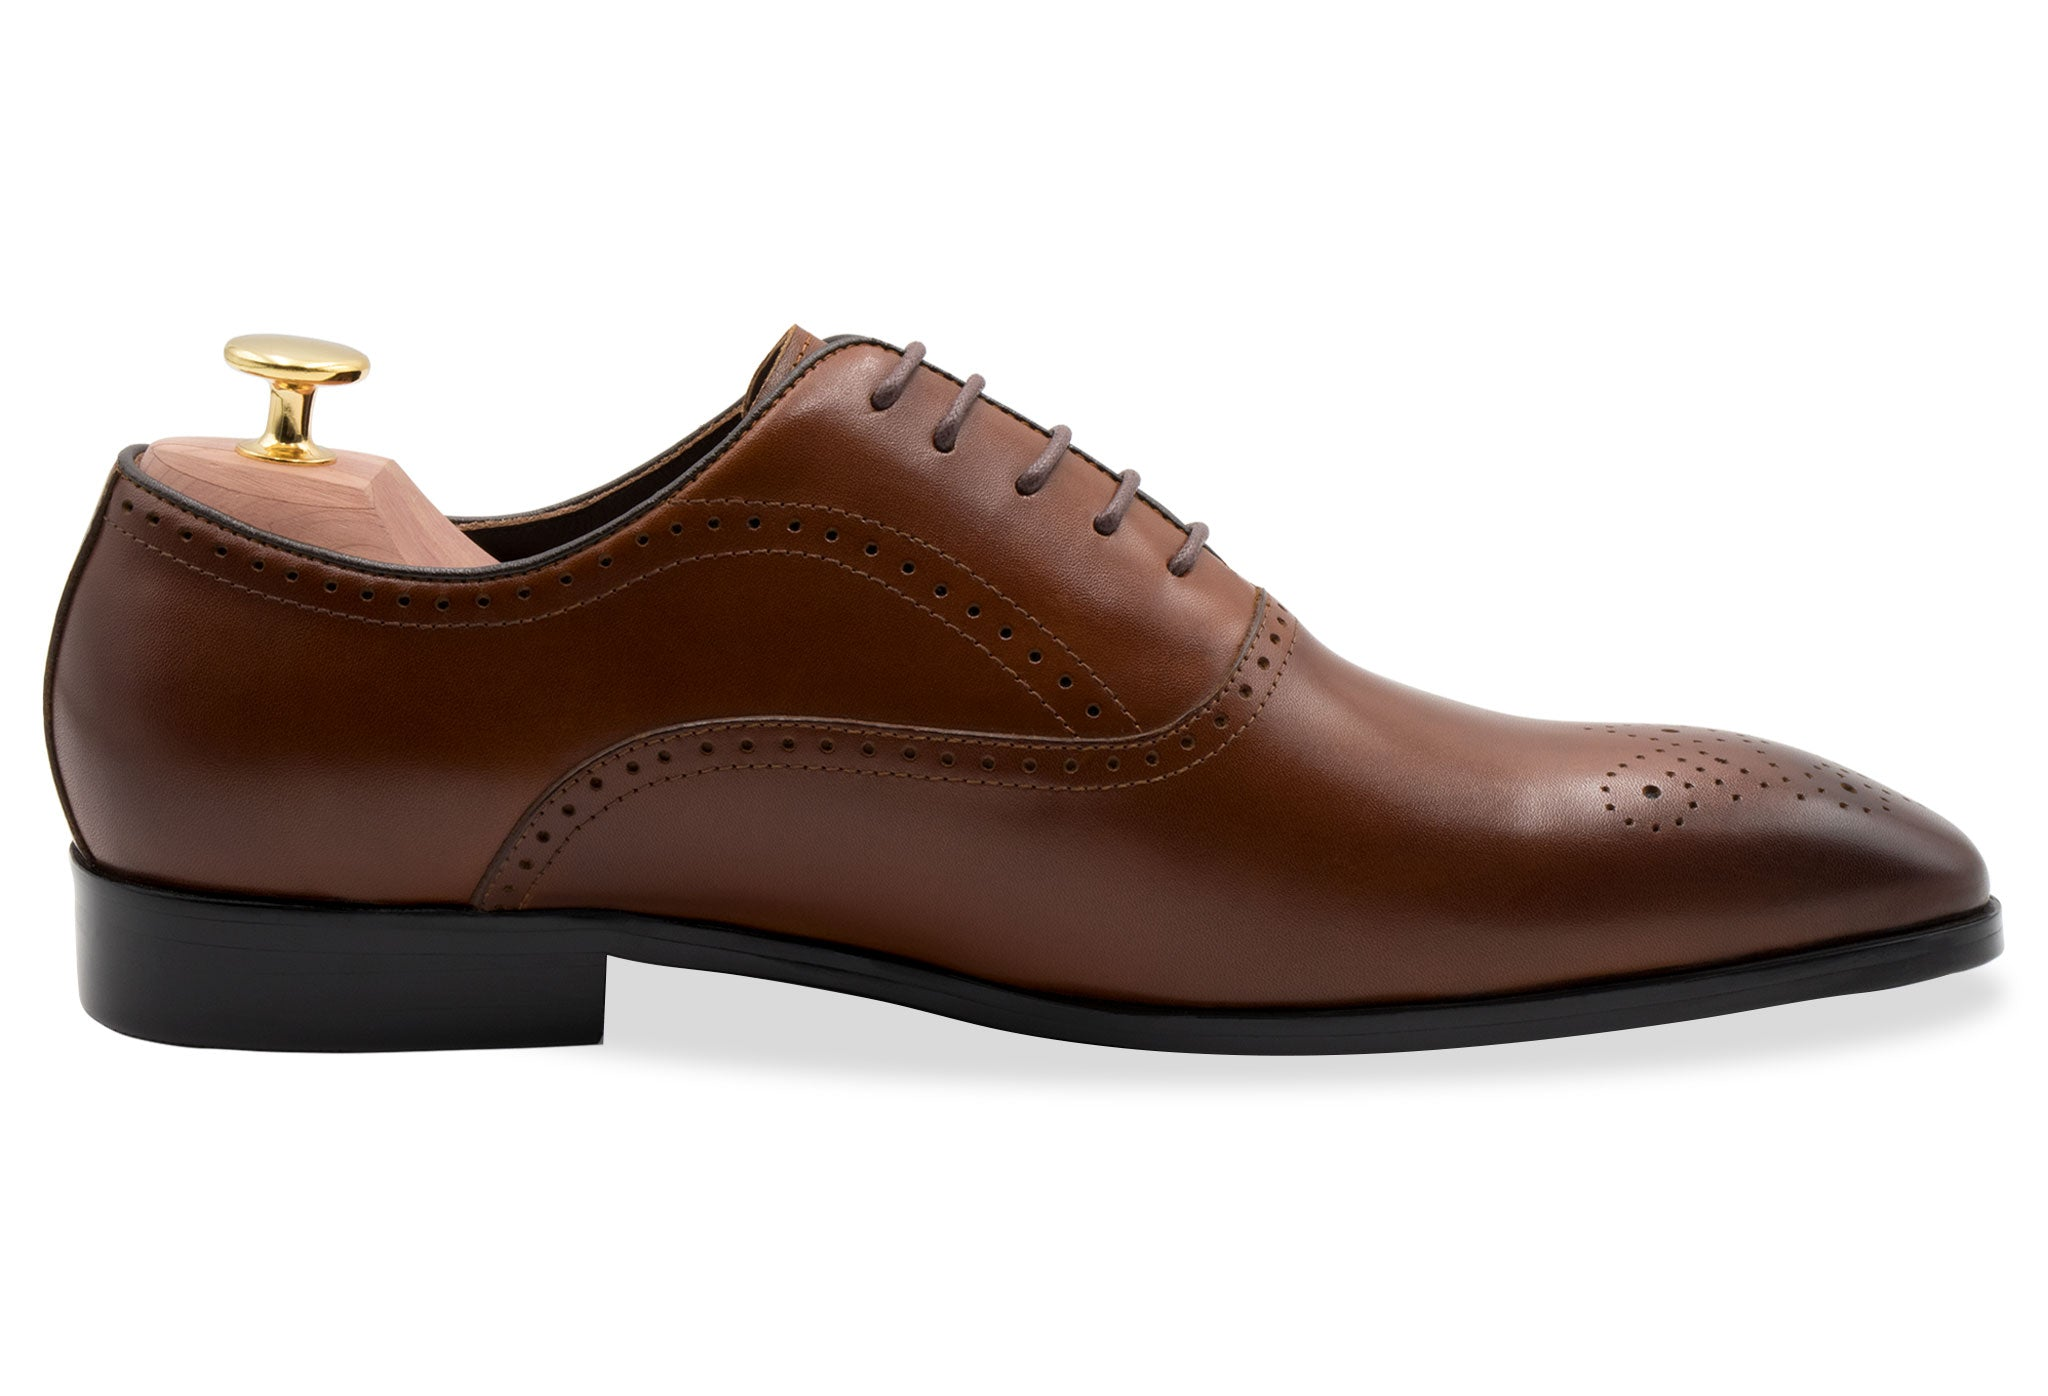 Mendoza Medallion Chestnut Oxford Leather Shoes